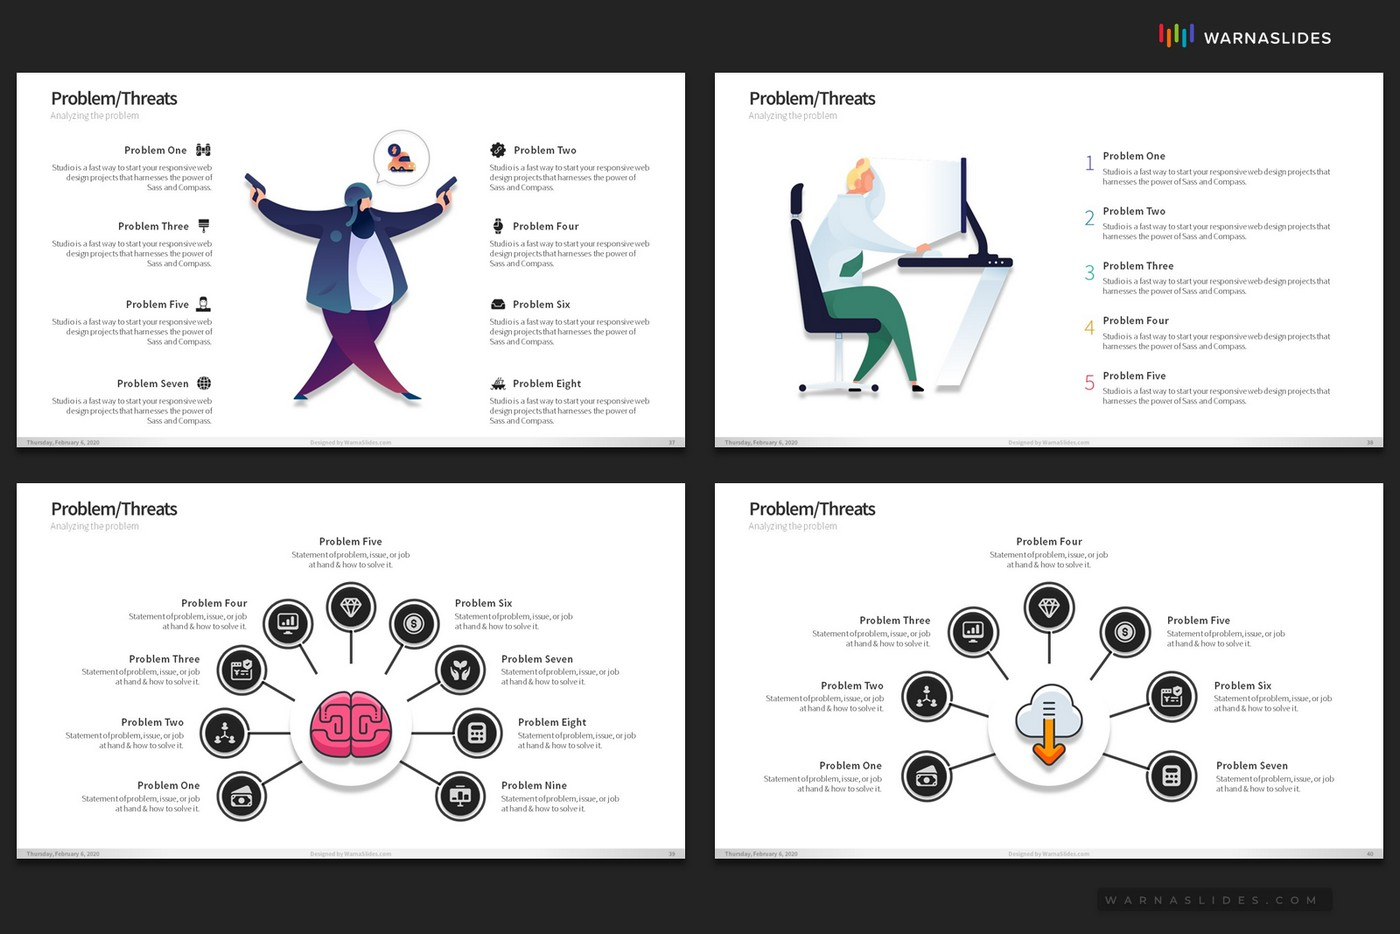 Problem-Threats-Risk-Management-Weaknesses-Services-Brainstorm-PowerPoint-Template-2020-for-Business-Pitch-Deck-Professional-Creative-Presentation-by-Warna-Slides-013